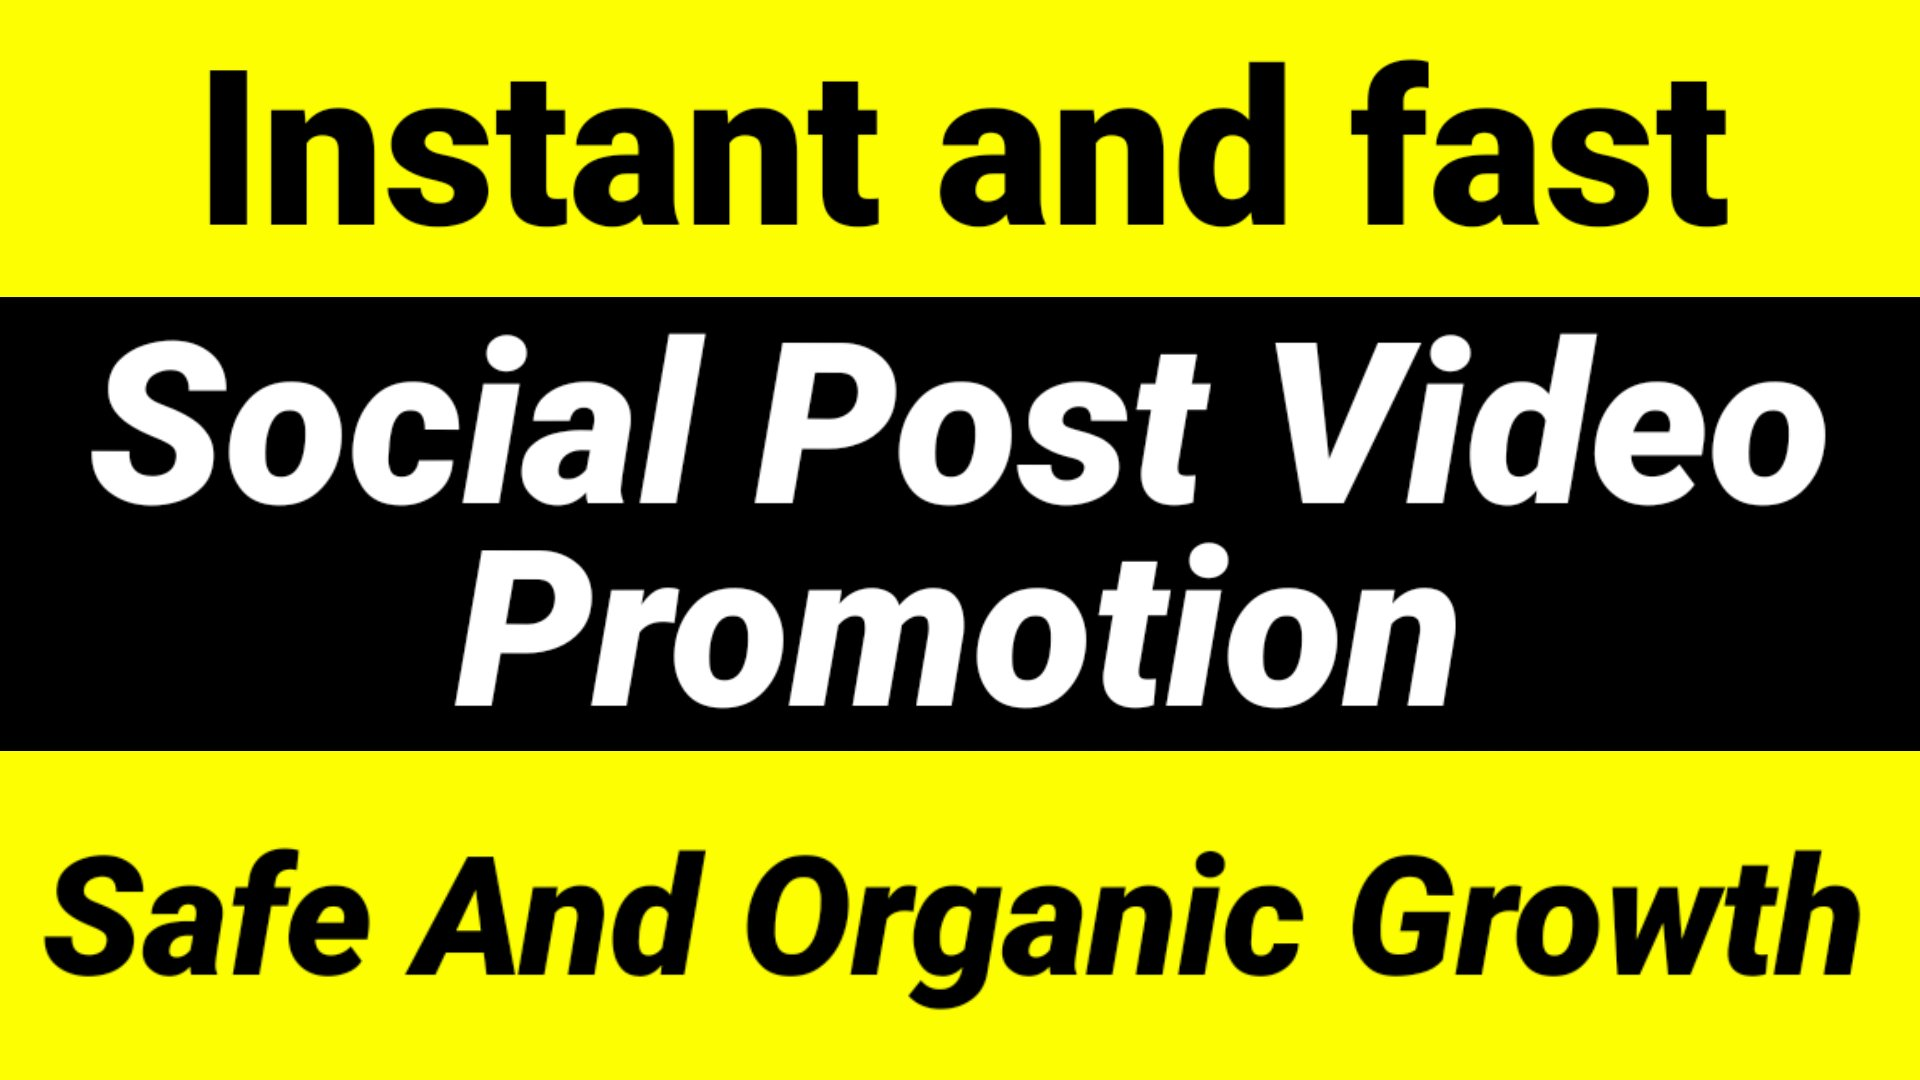 Instant Social Video and Promotion fast